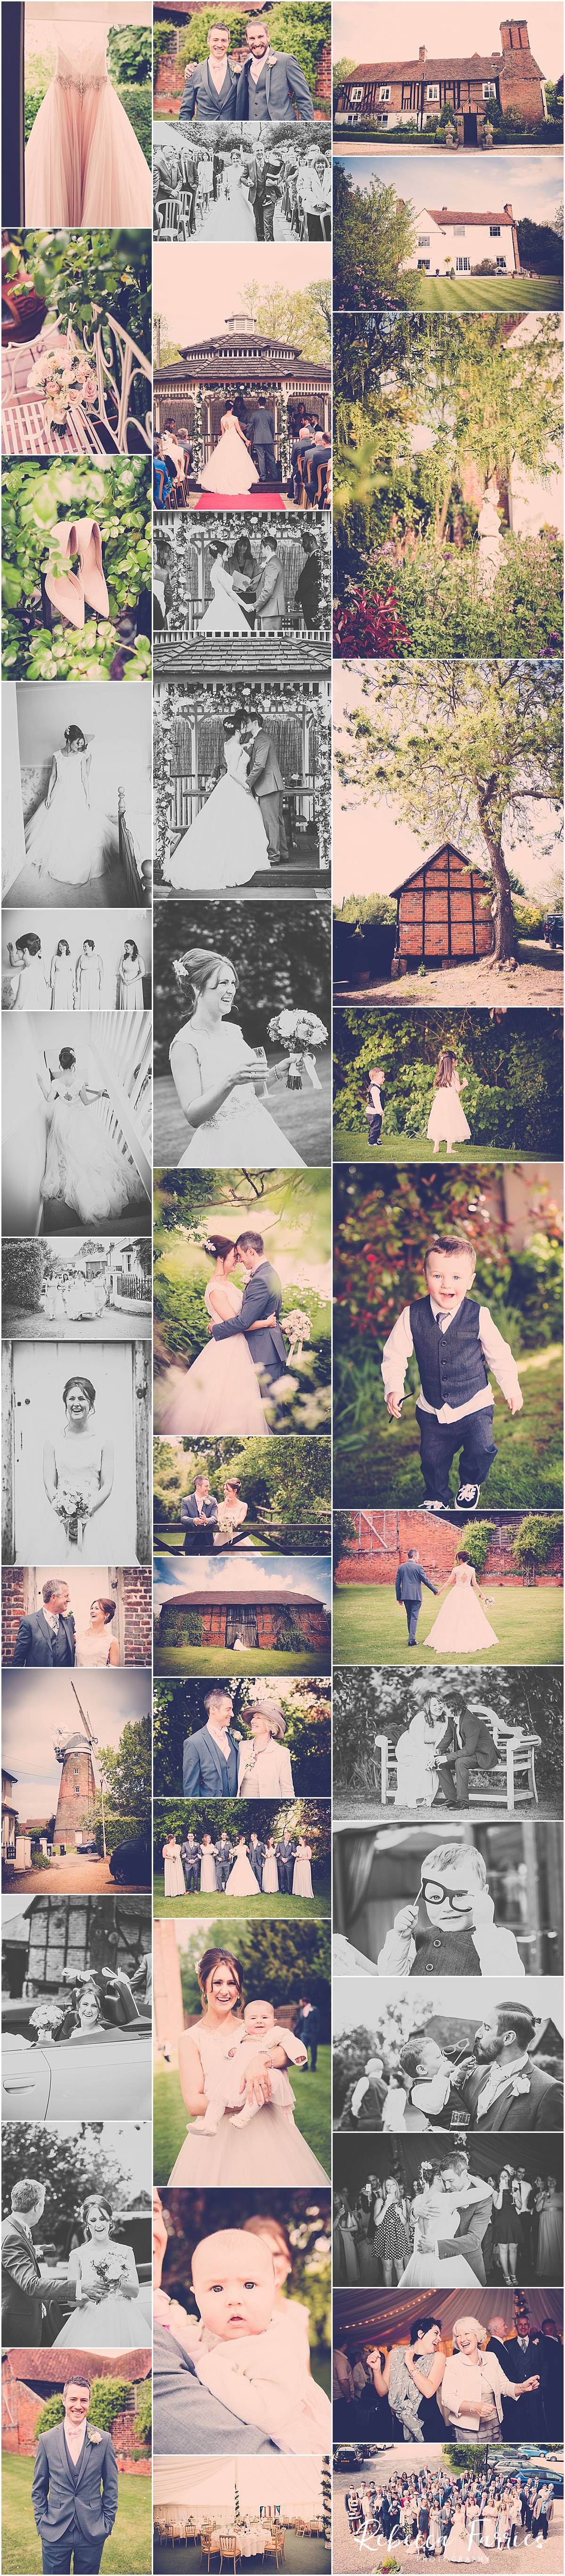 Wedding Photography Collage from Newland Hall in Essex